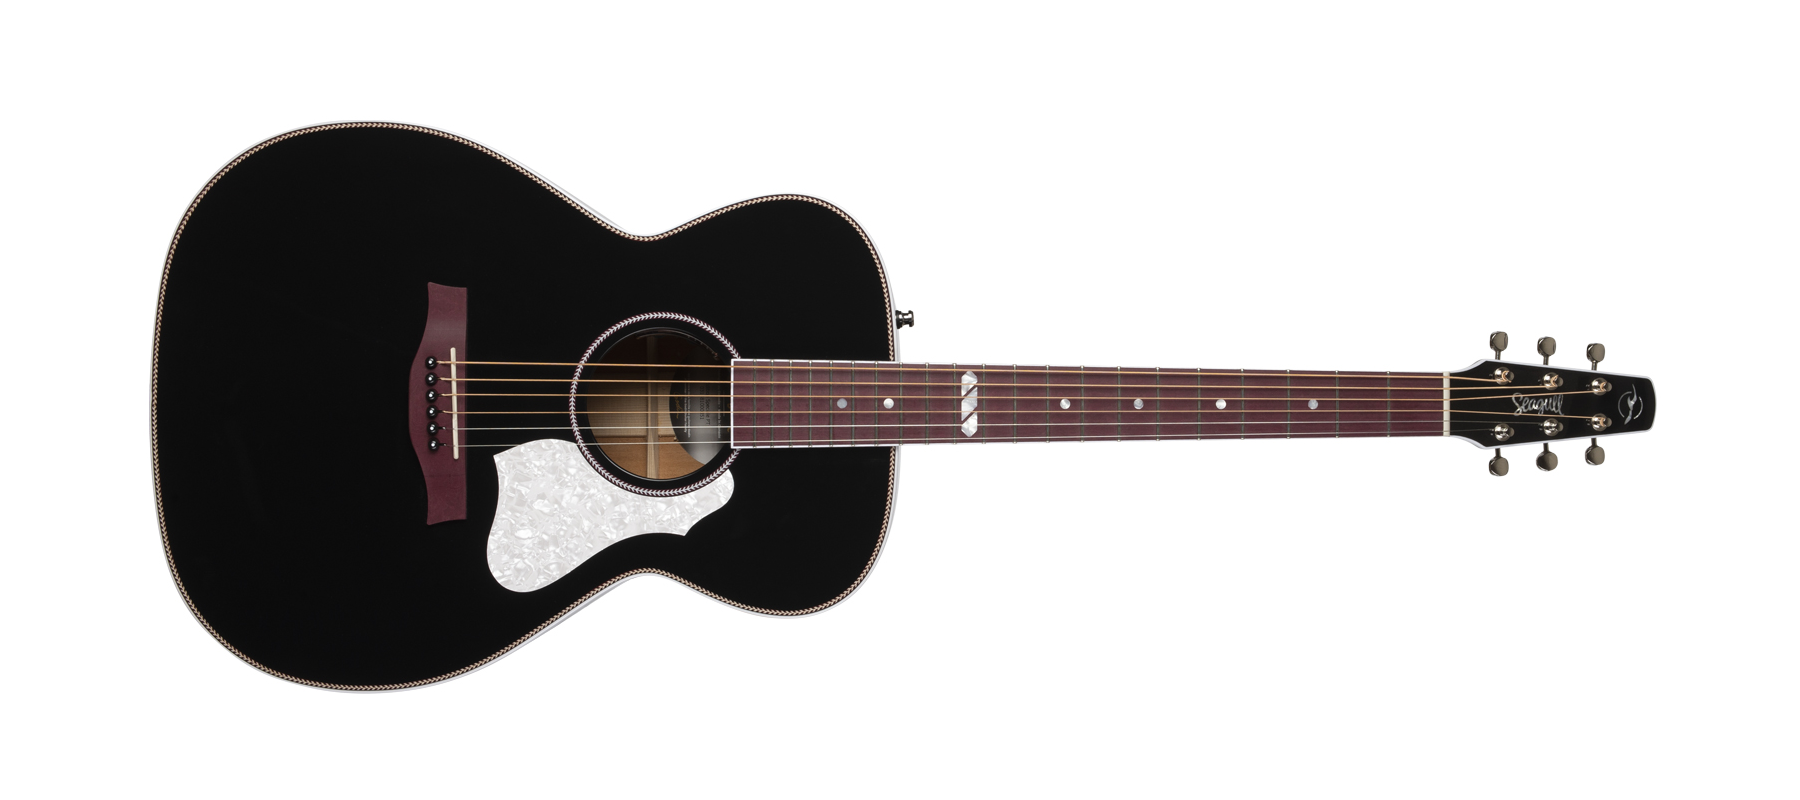 Seagull Artist Limited Tuxedo Black with Tric Case